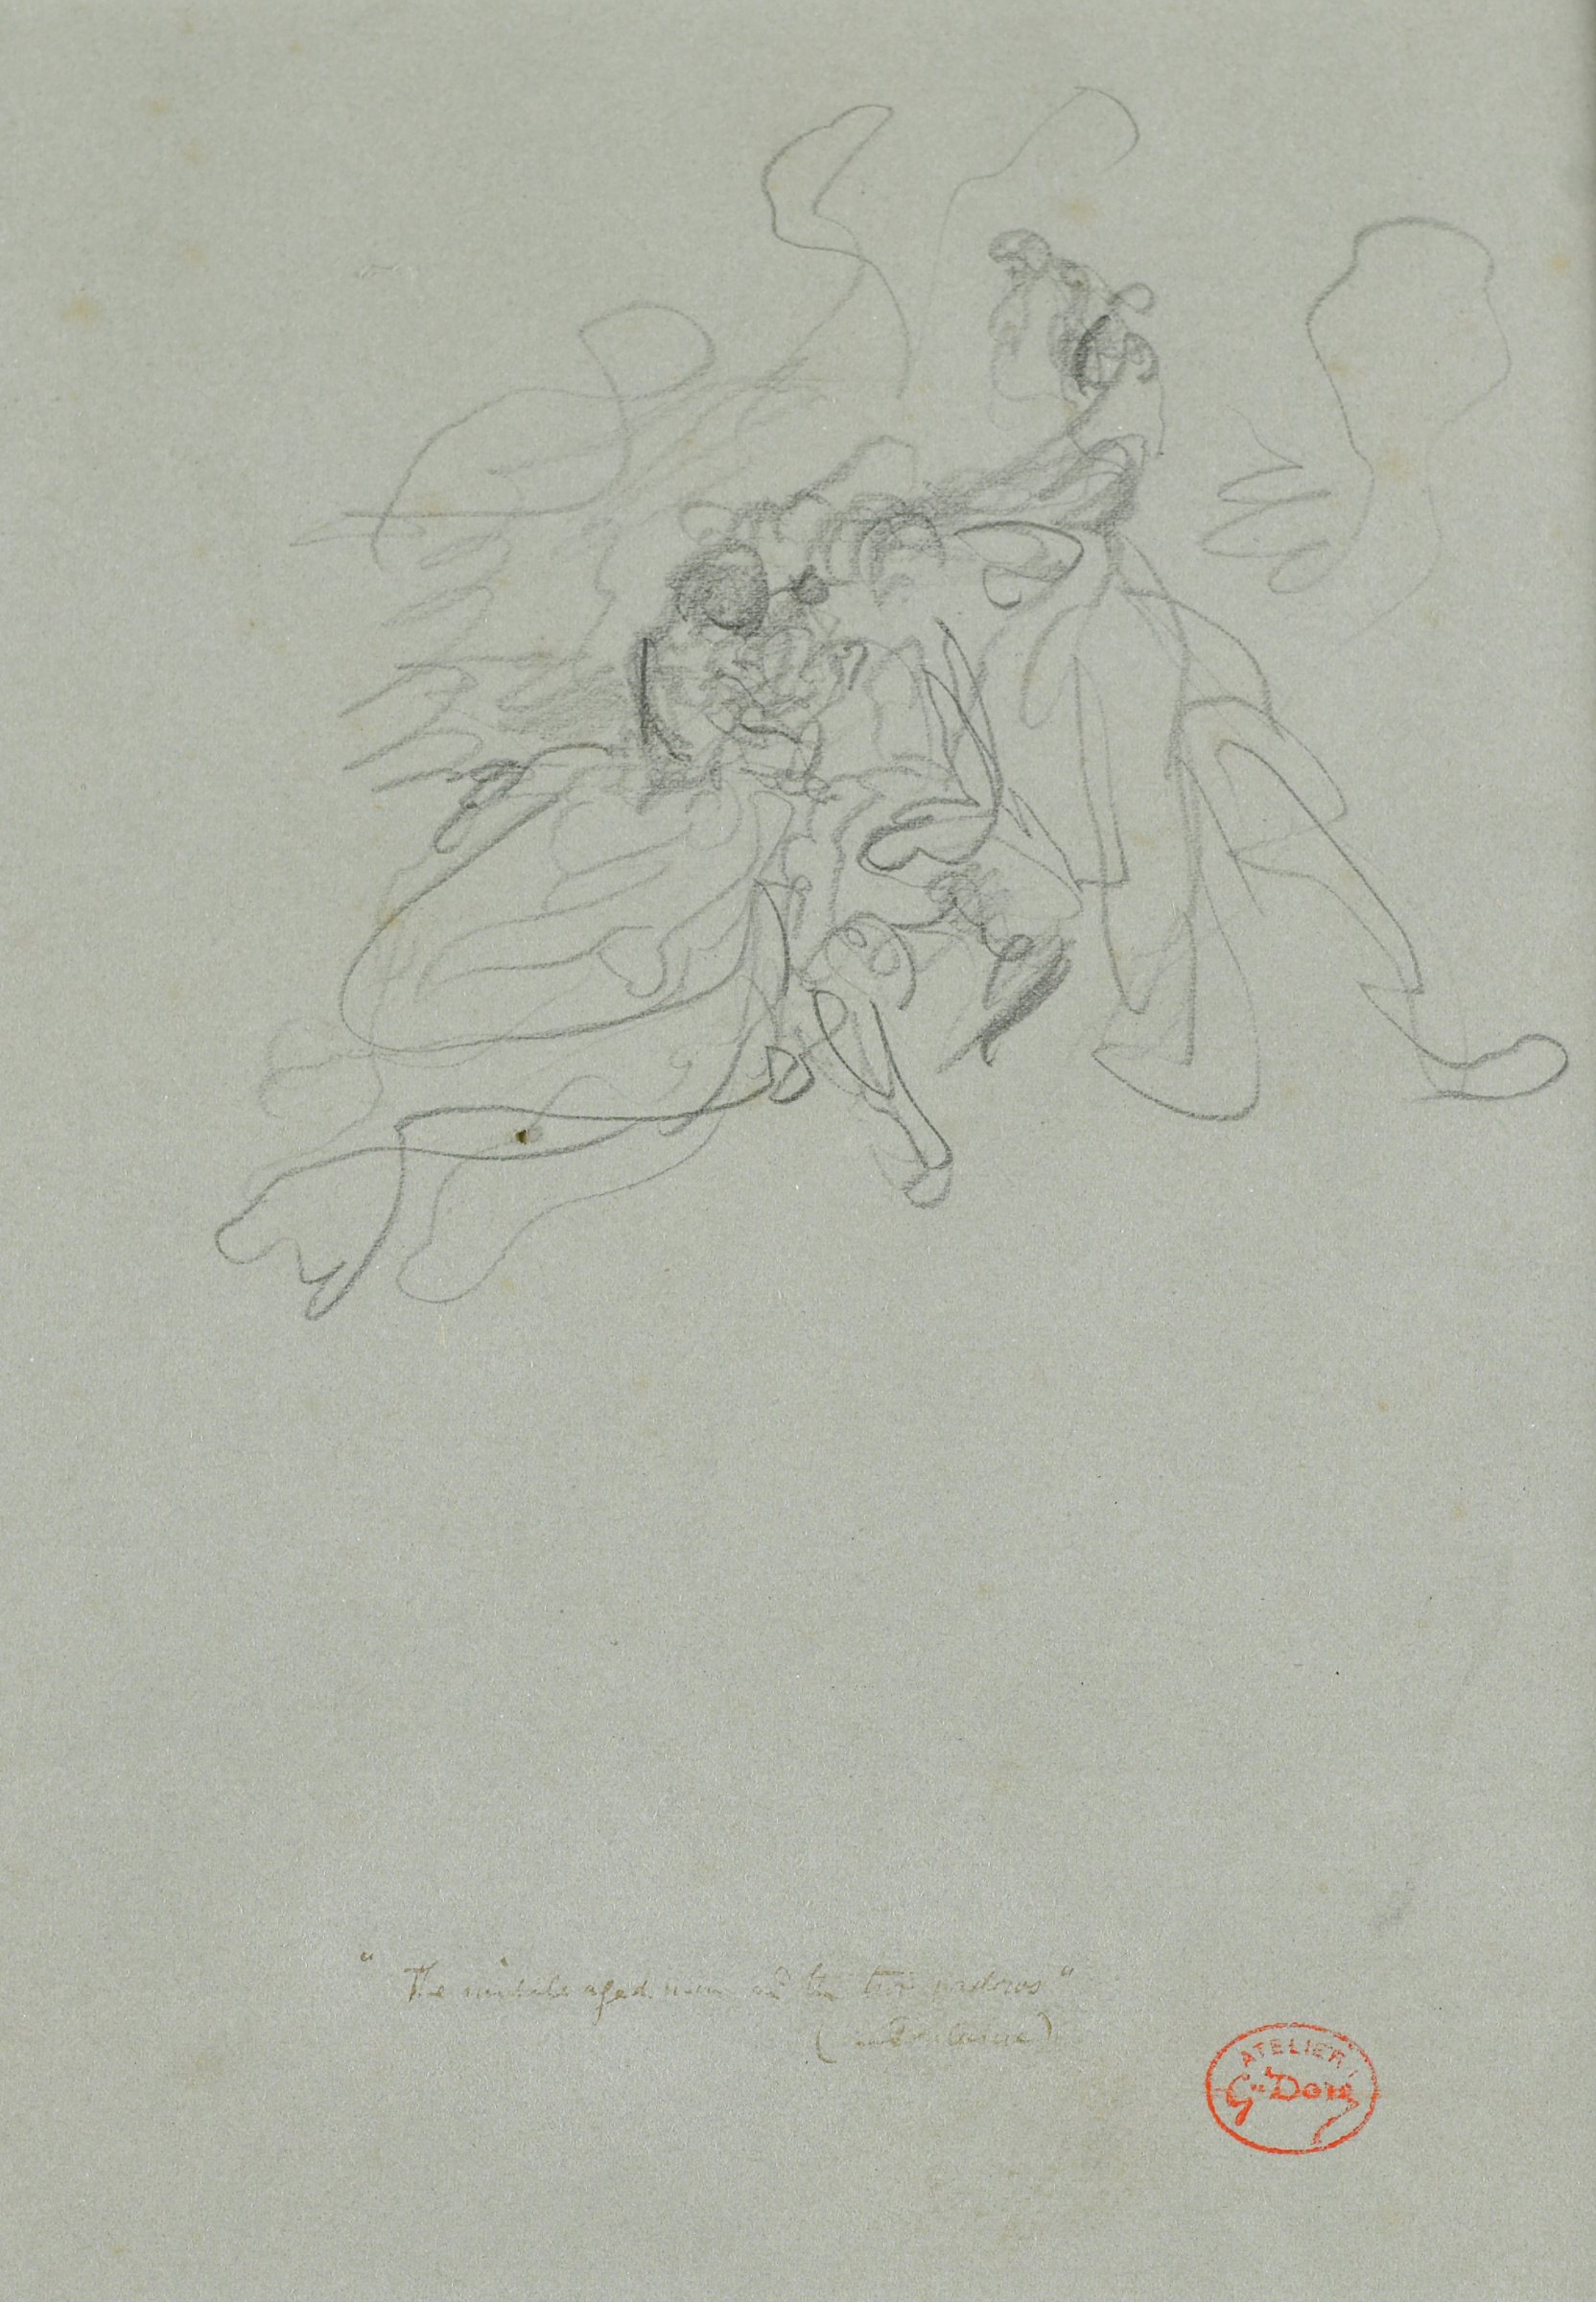 A series of swirling lines with a concentration of lines in the center make up this composition. The figures are unidentifiable.